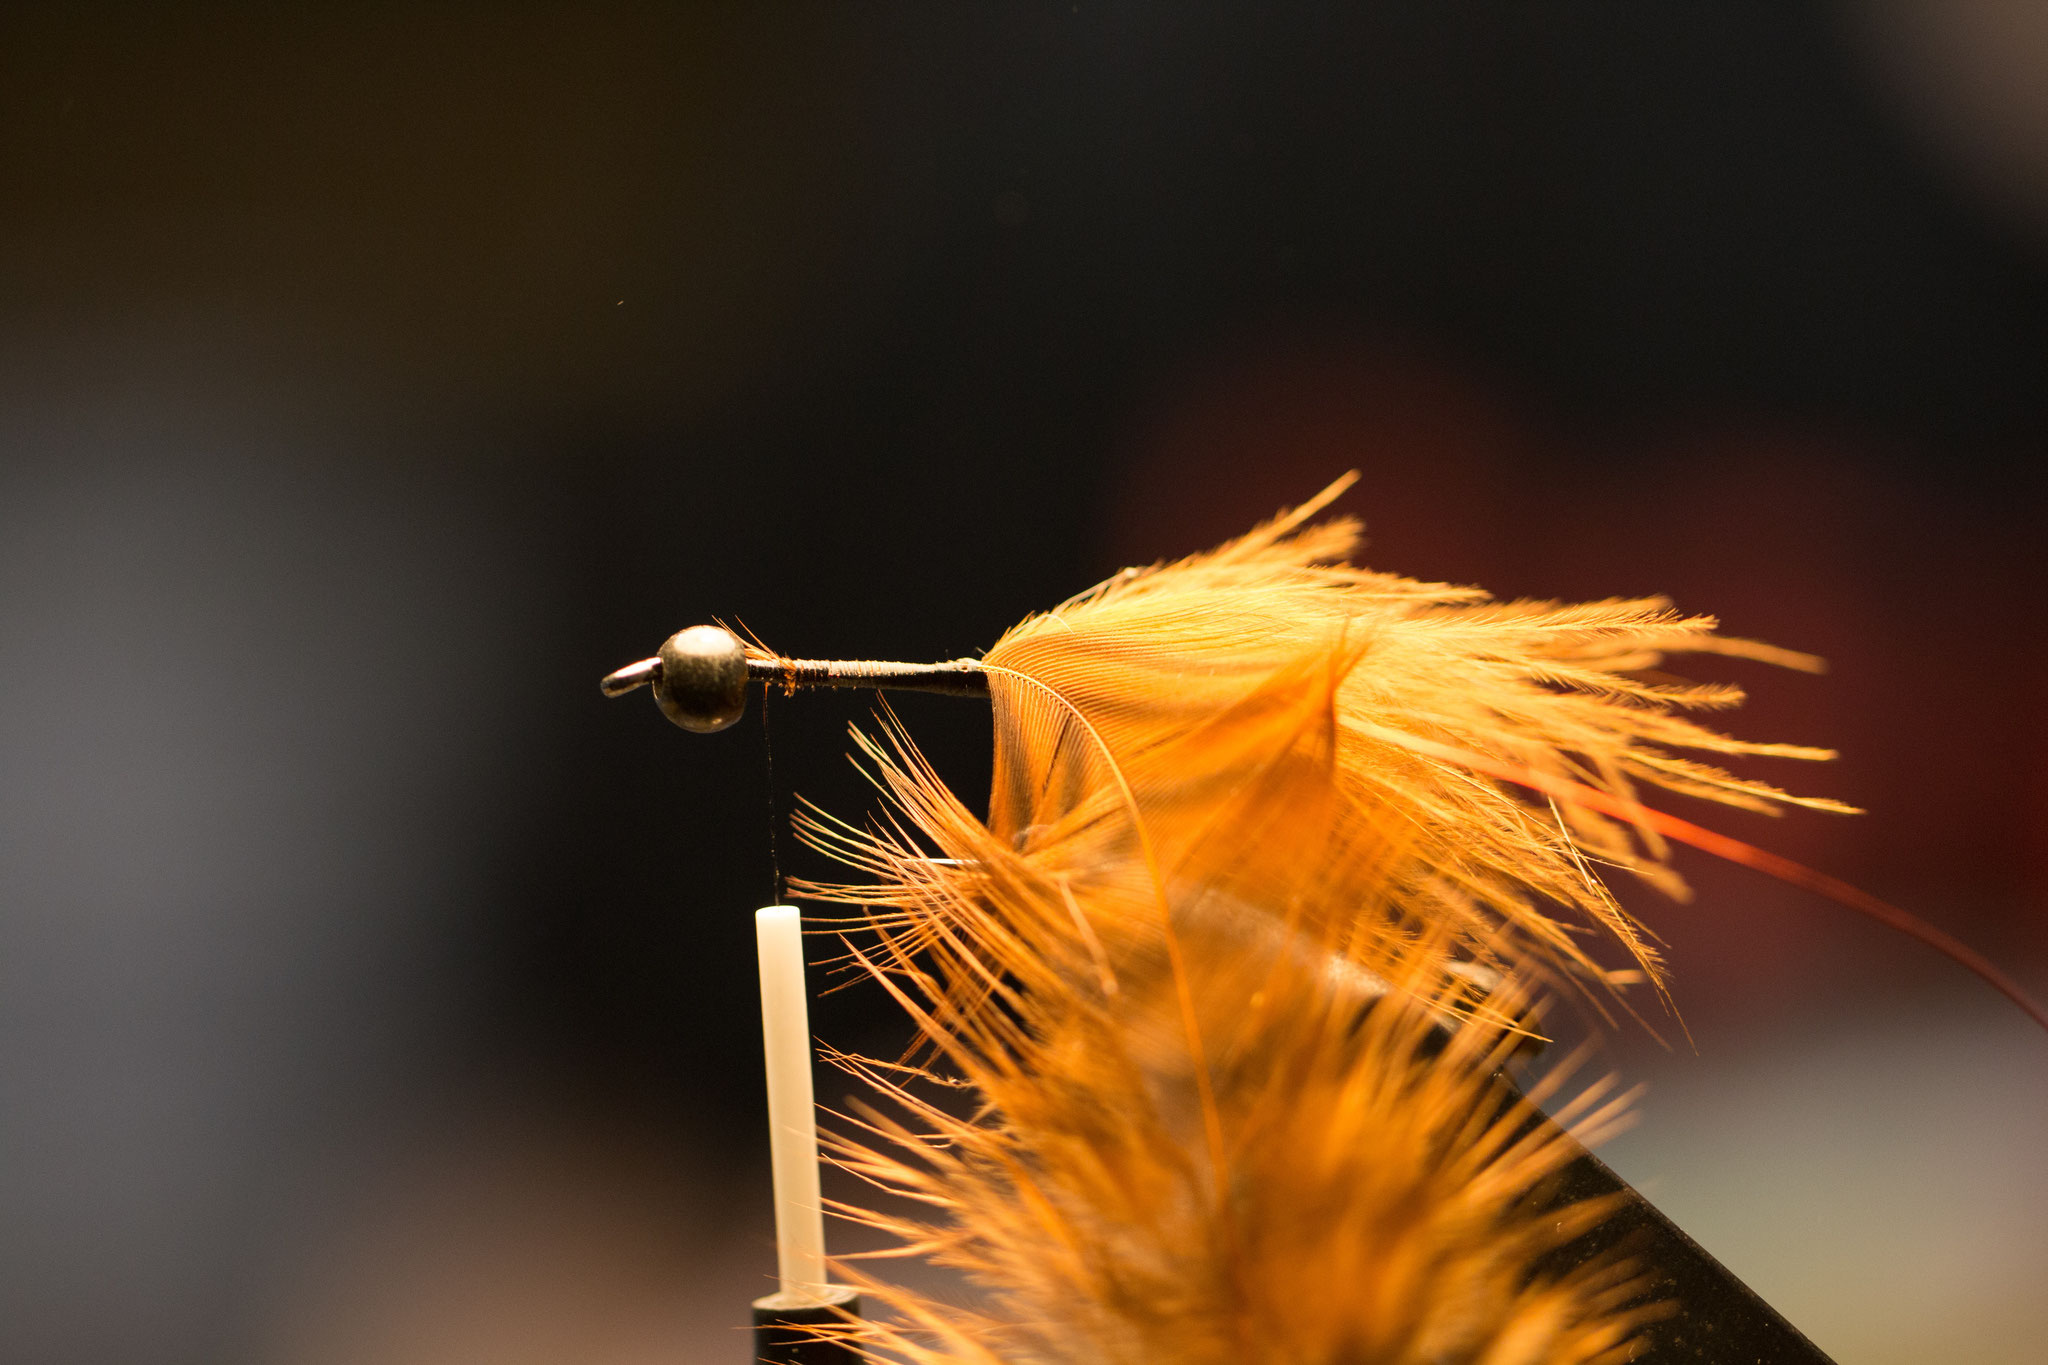 First, tie in a piece of wire that will secure the hackle afterwards. Then, tie in a saddle hackle with its tip.